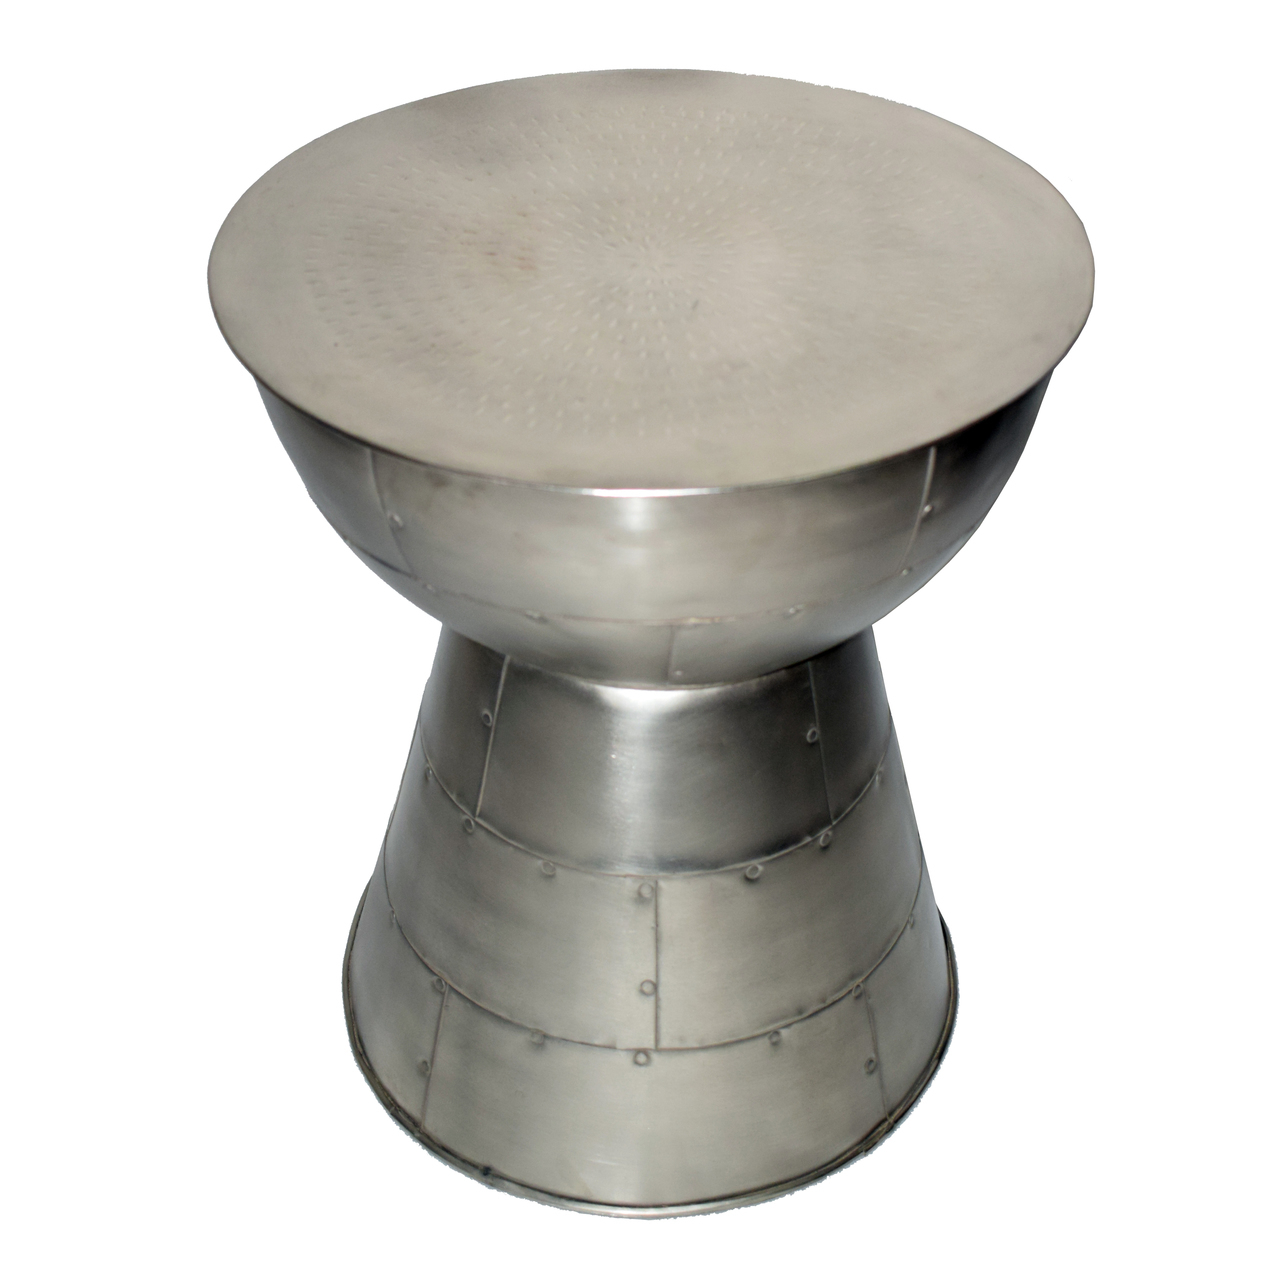 mushroom shaped silver accent table cairo silvered metal restoration hardware leather chair nautical pendant lights for kitchen island stand industrial side vintage wooden mats